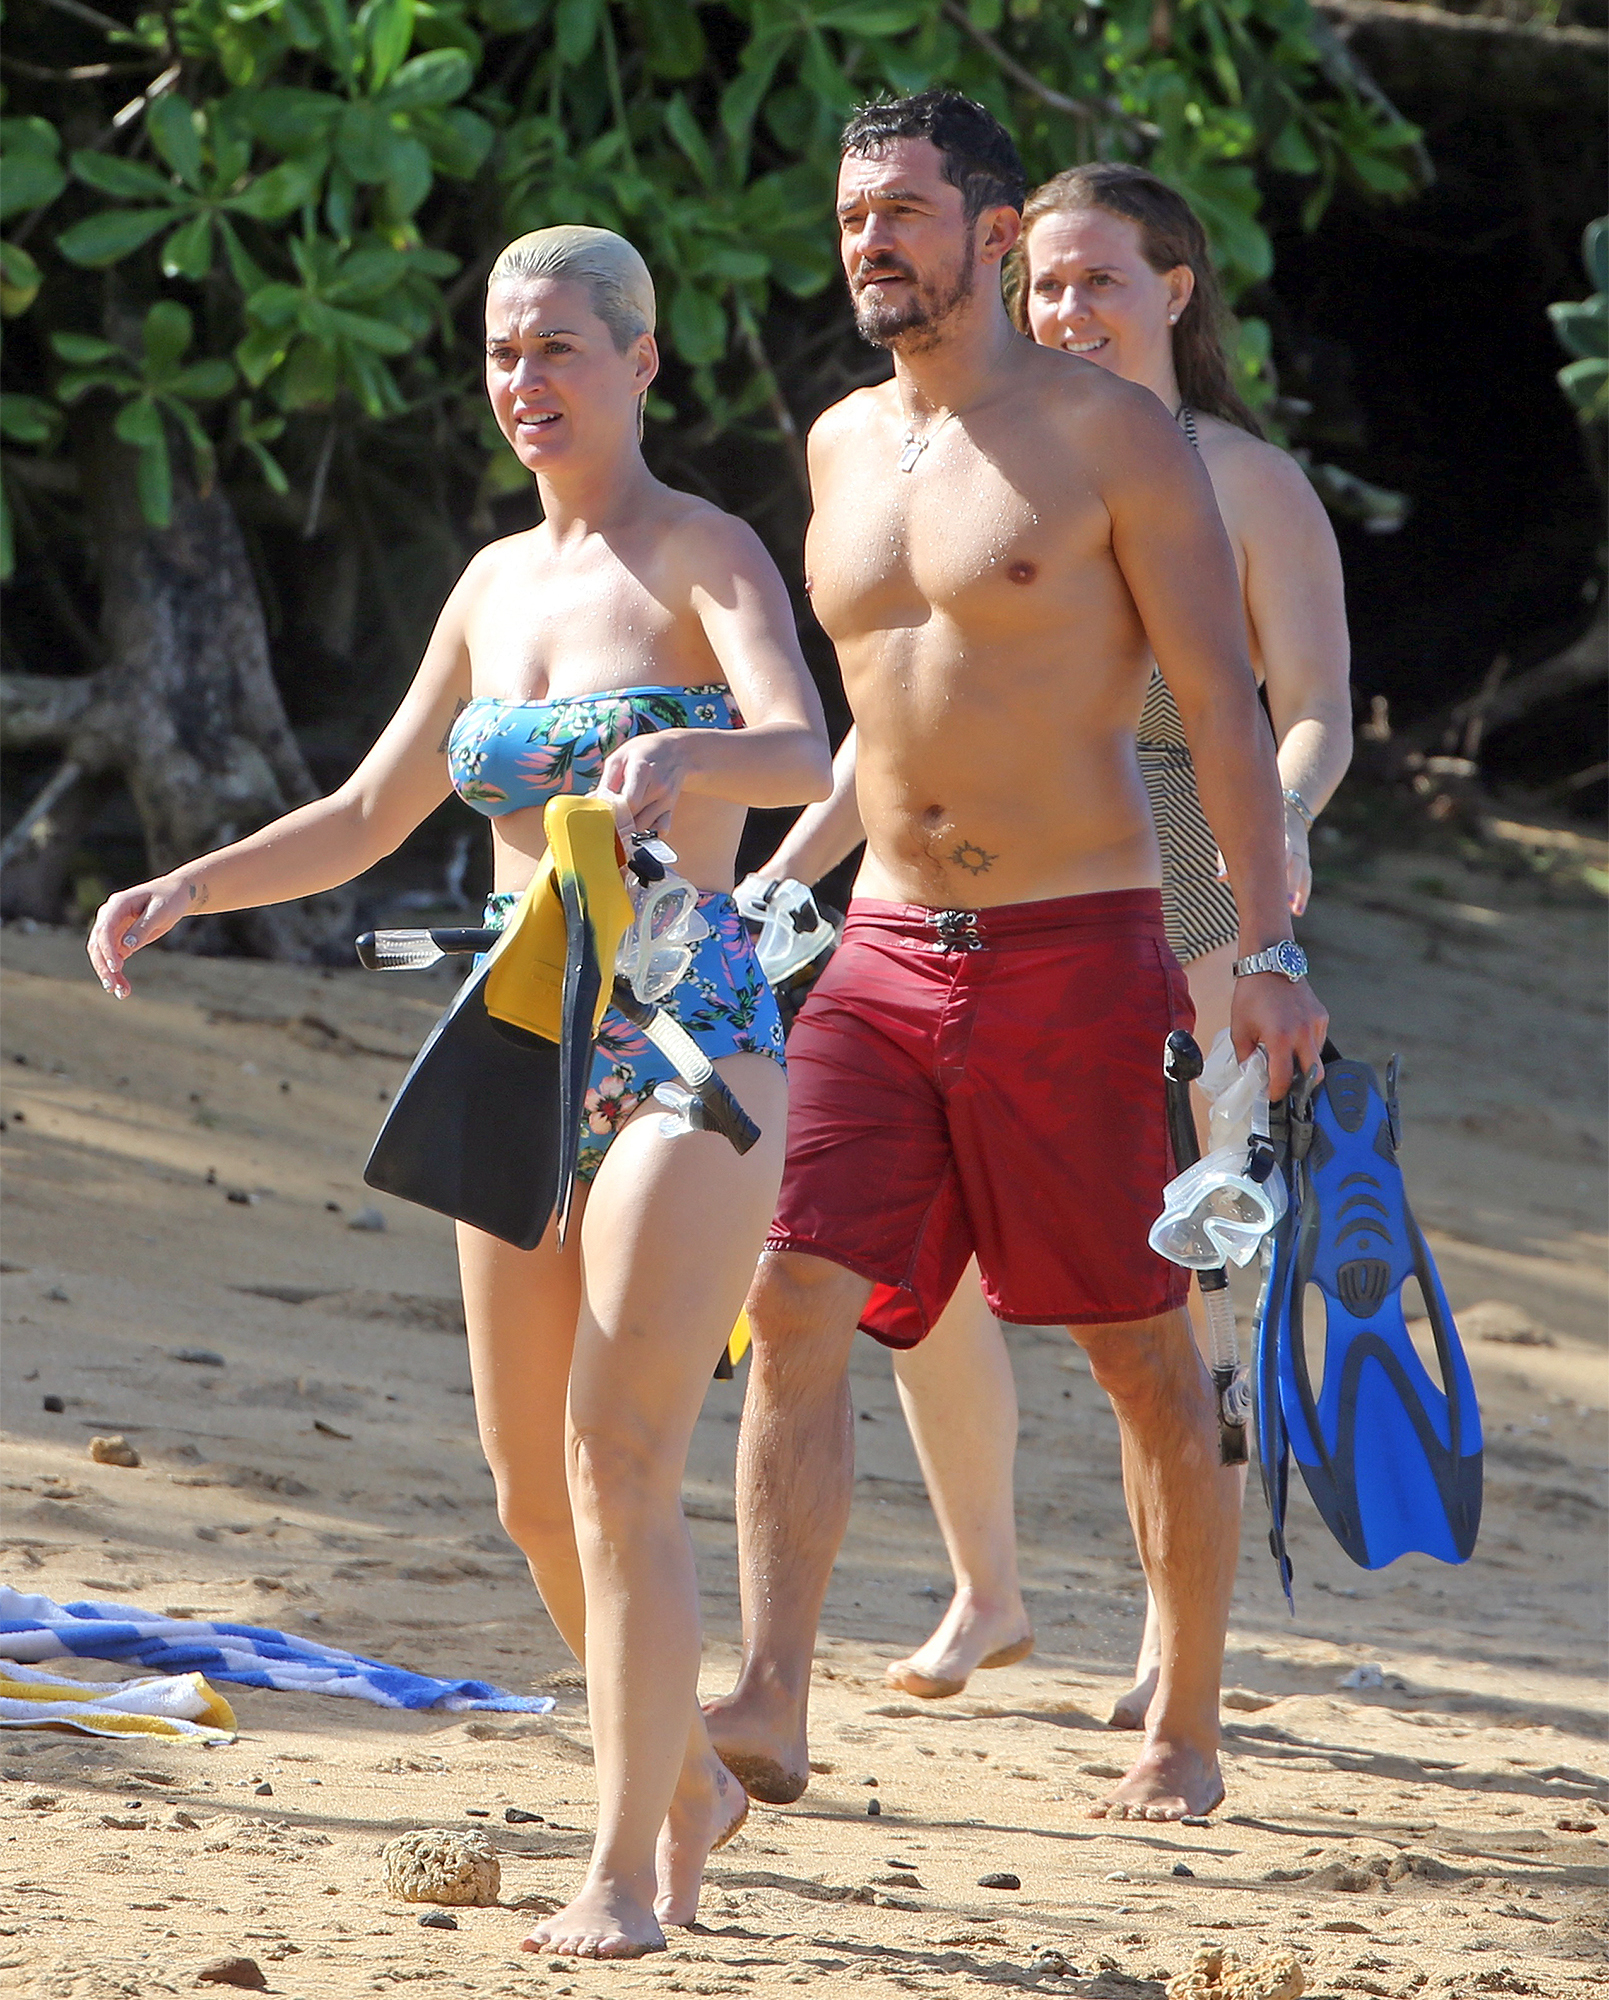 EXCLUSIVE: Orlando Bloom and Katy Perry spend their Christmas vacation on the beach in Hawaii with family